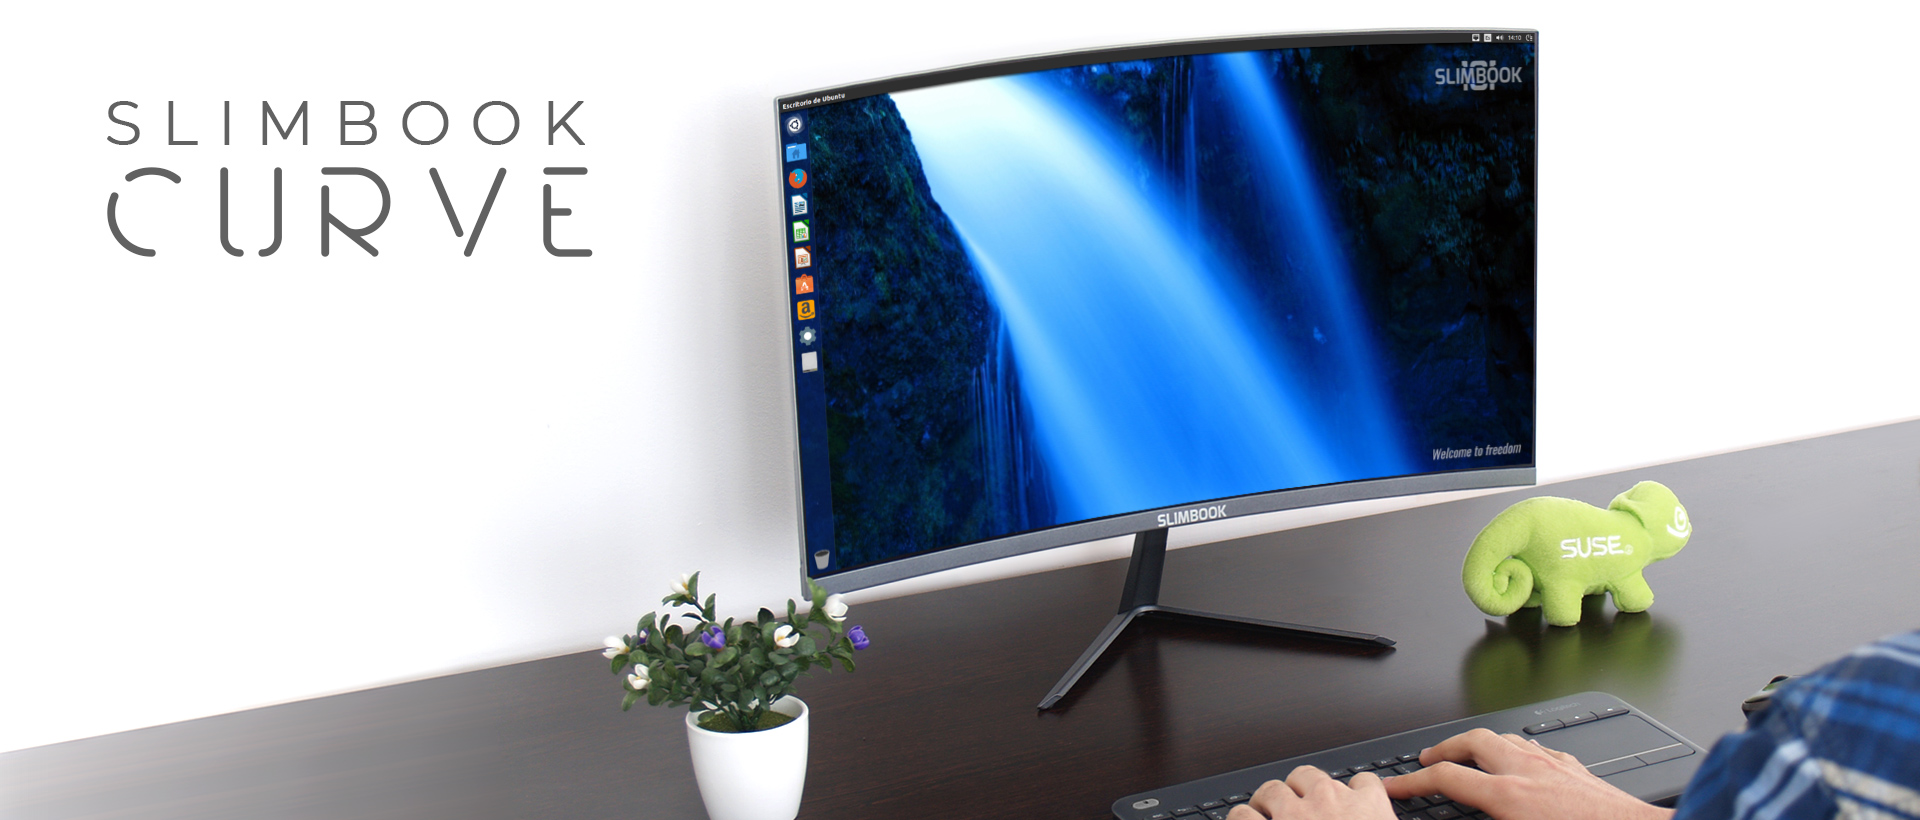 The Slimbook Curve is a Stunning All-in-One Linux PC - OMG! Ubuntu!